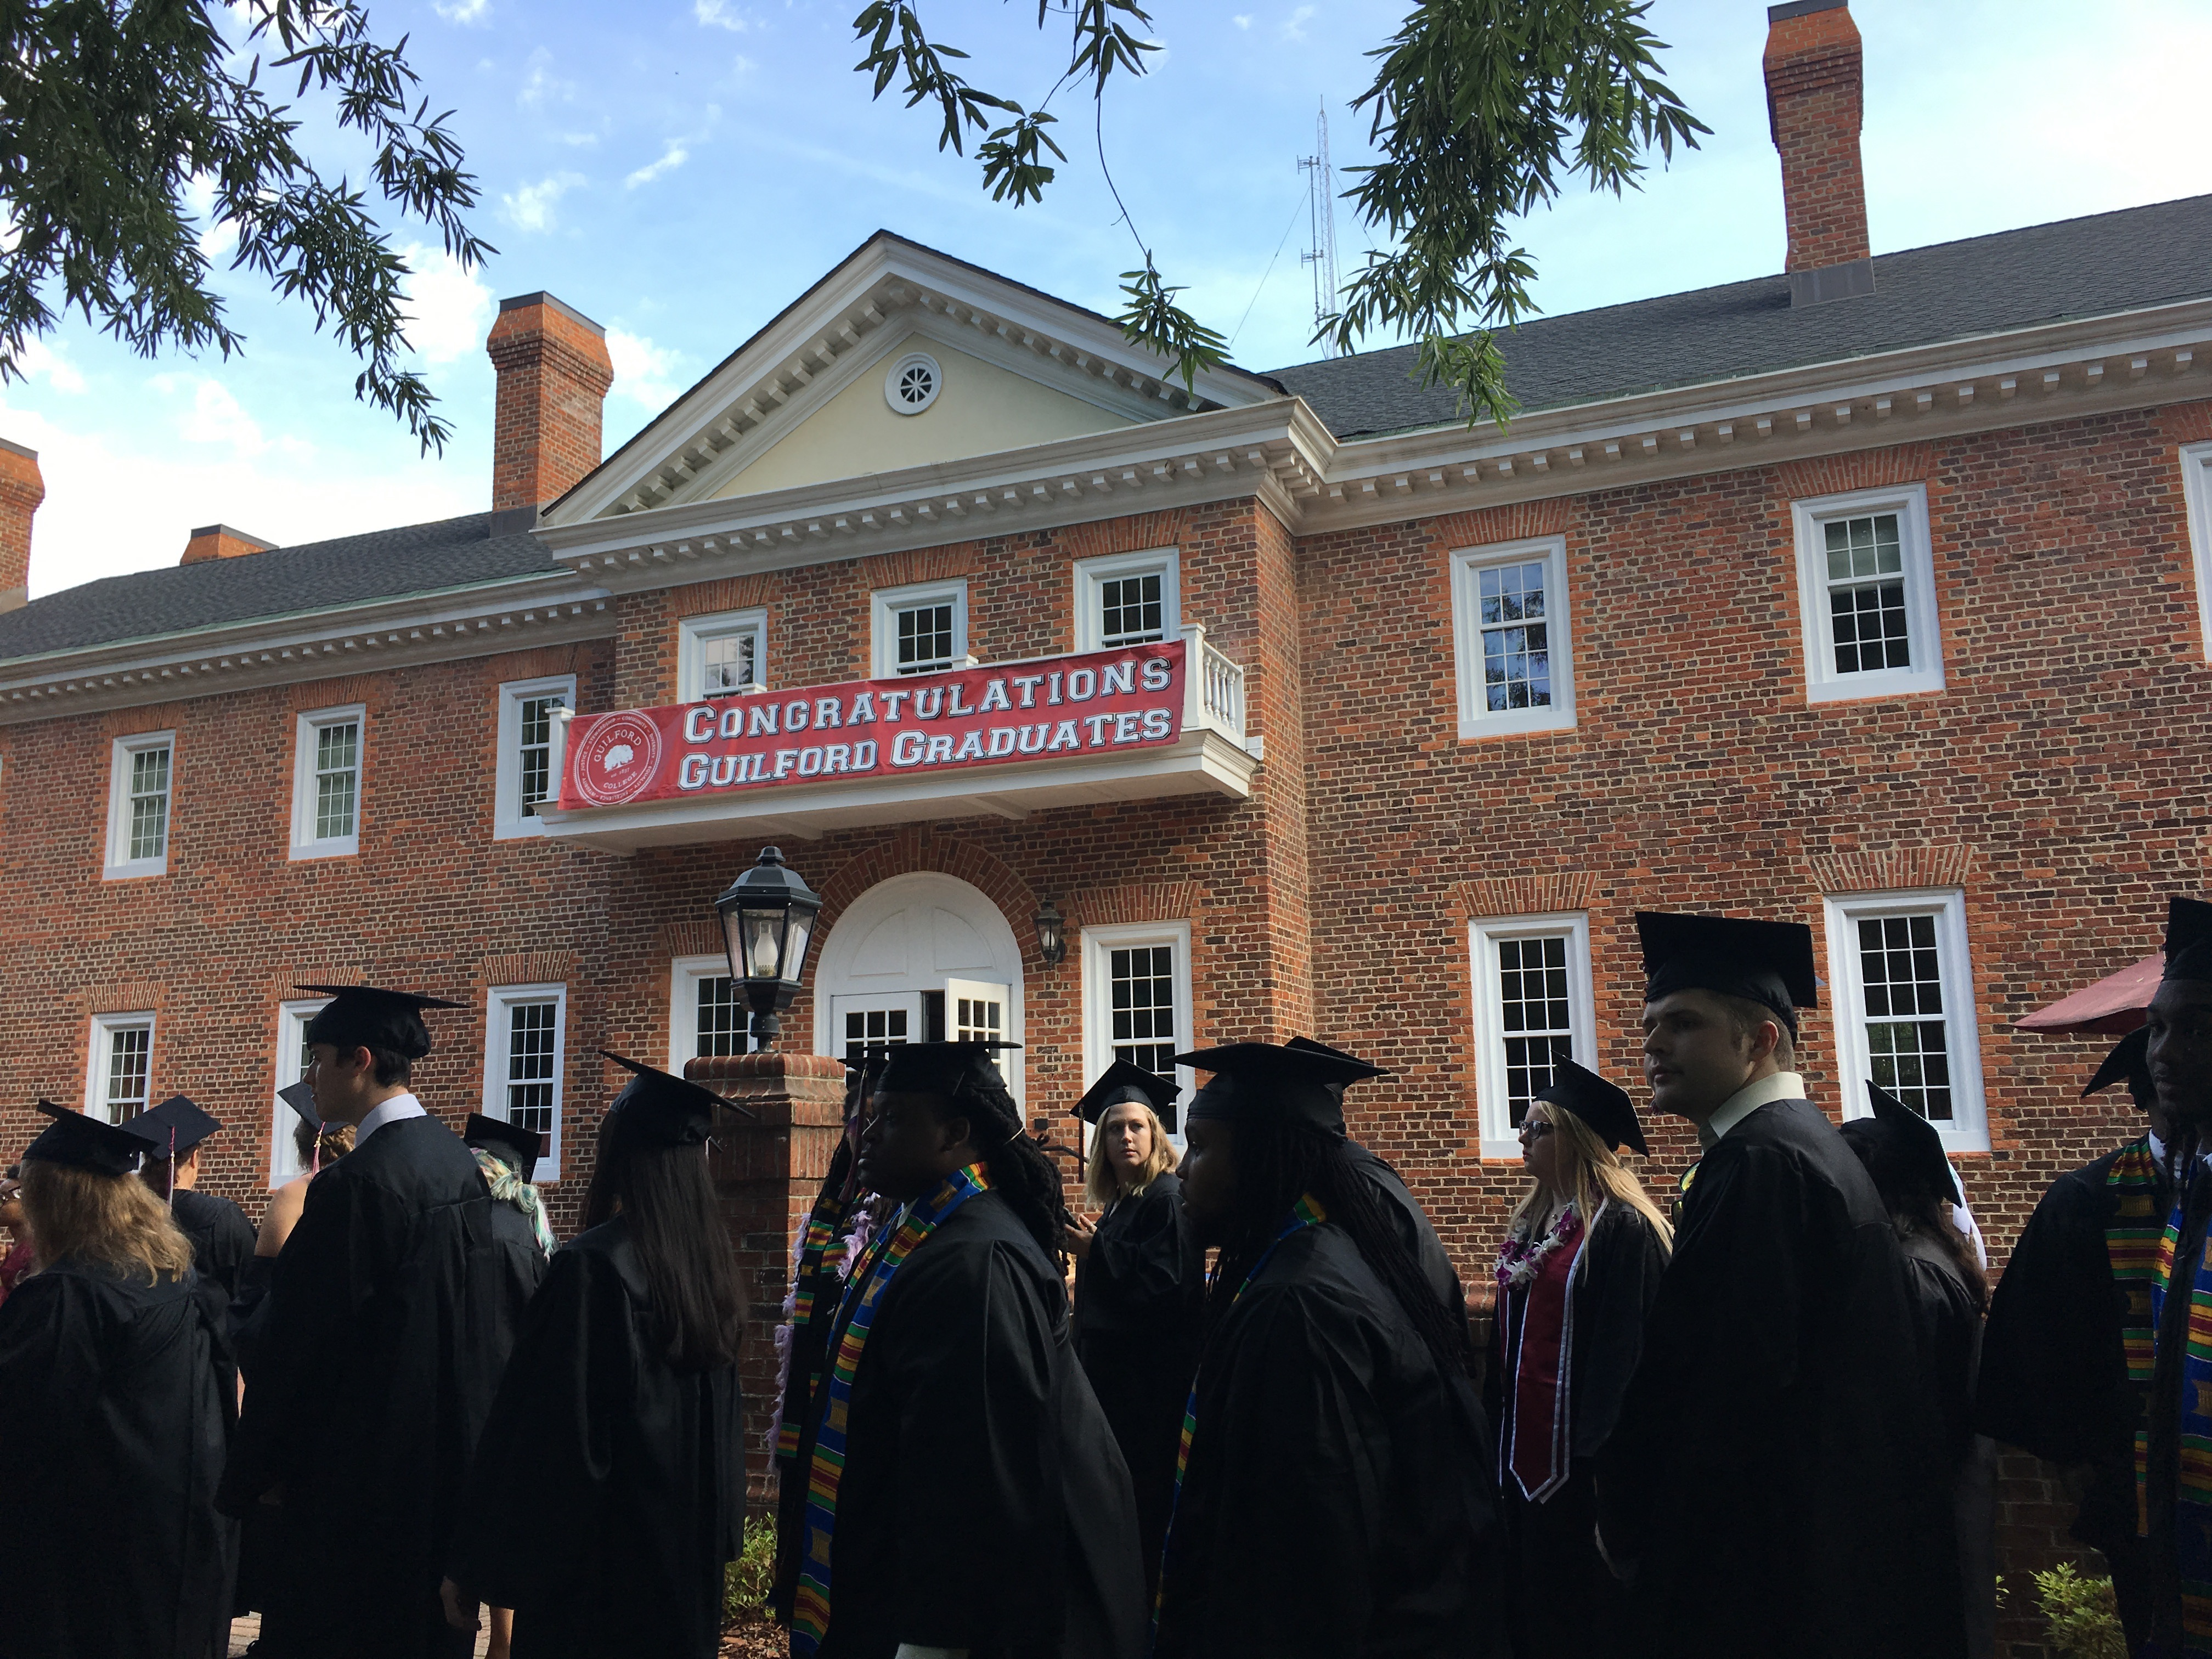 Congratulations to the Guilford College Class of 2017!